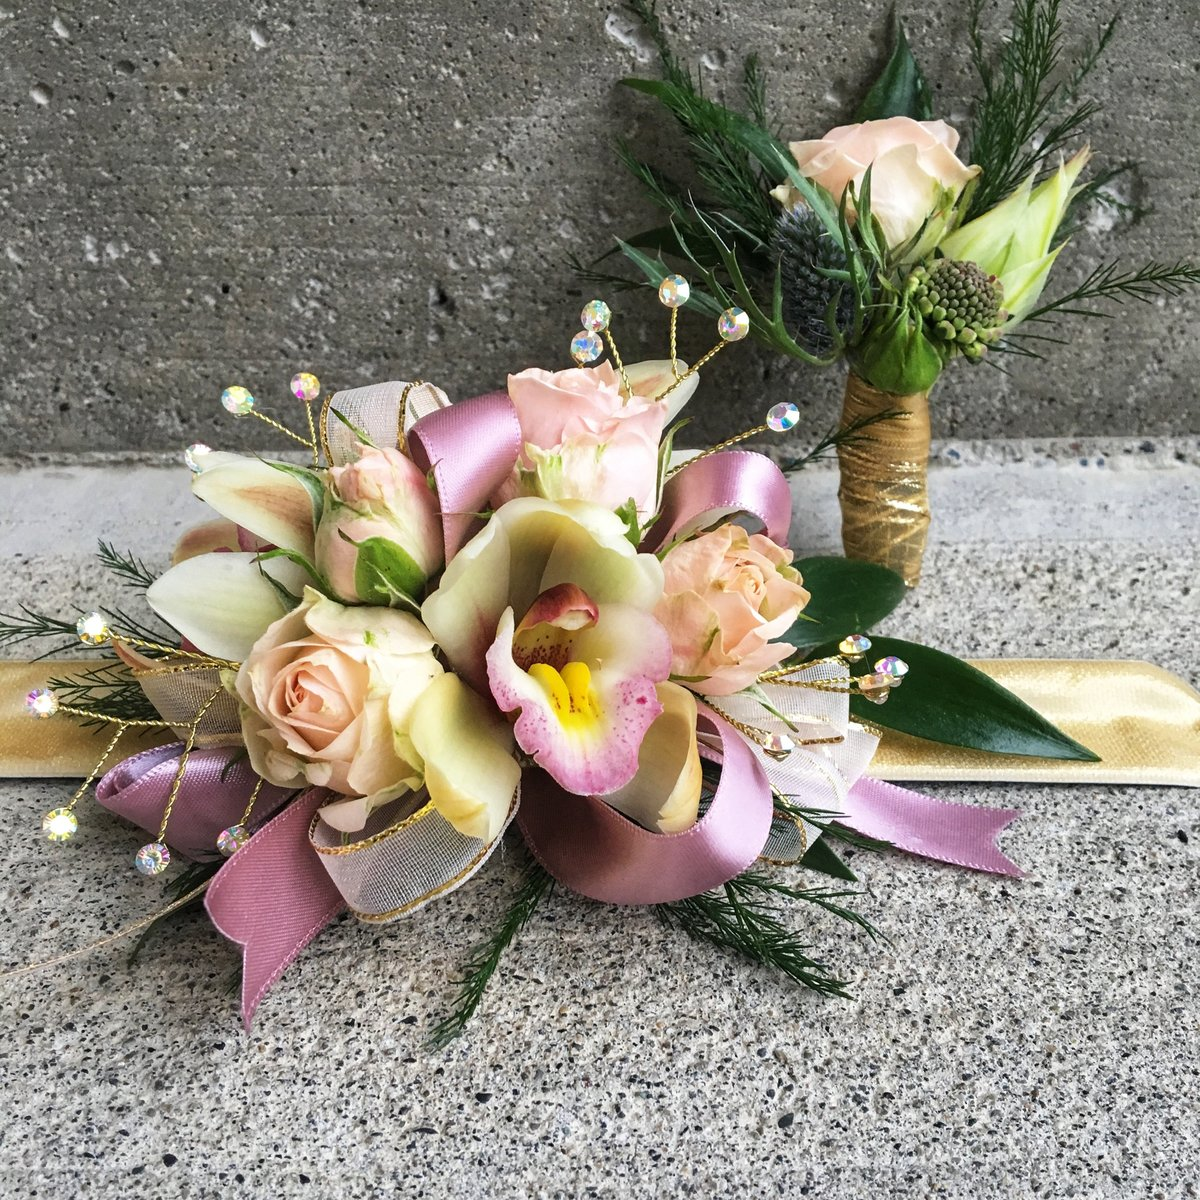 Butterscotch Cymbidium wrist corsage and boutonniere